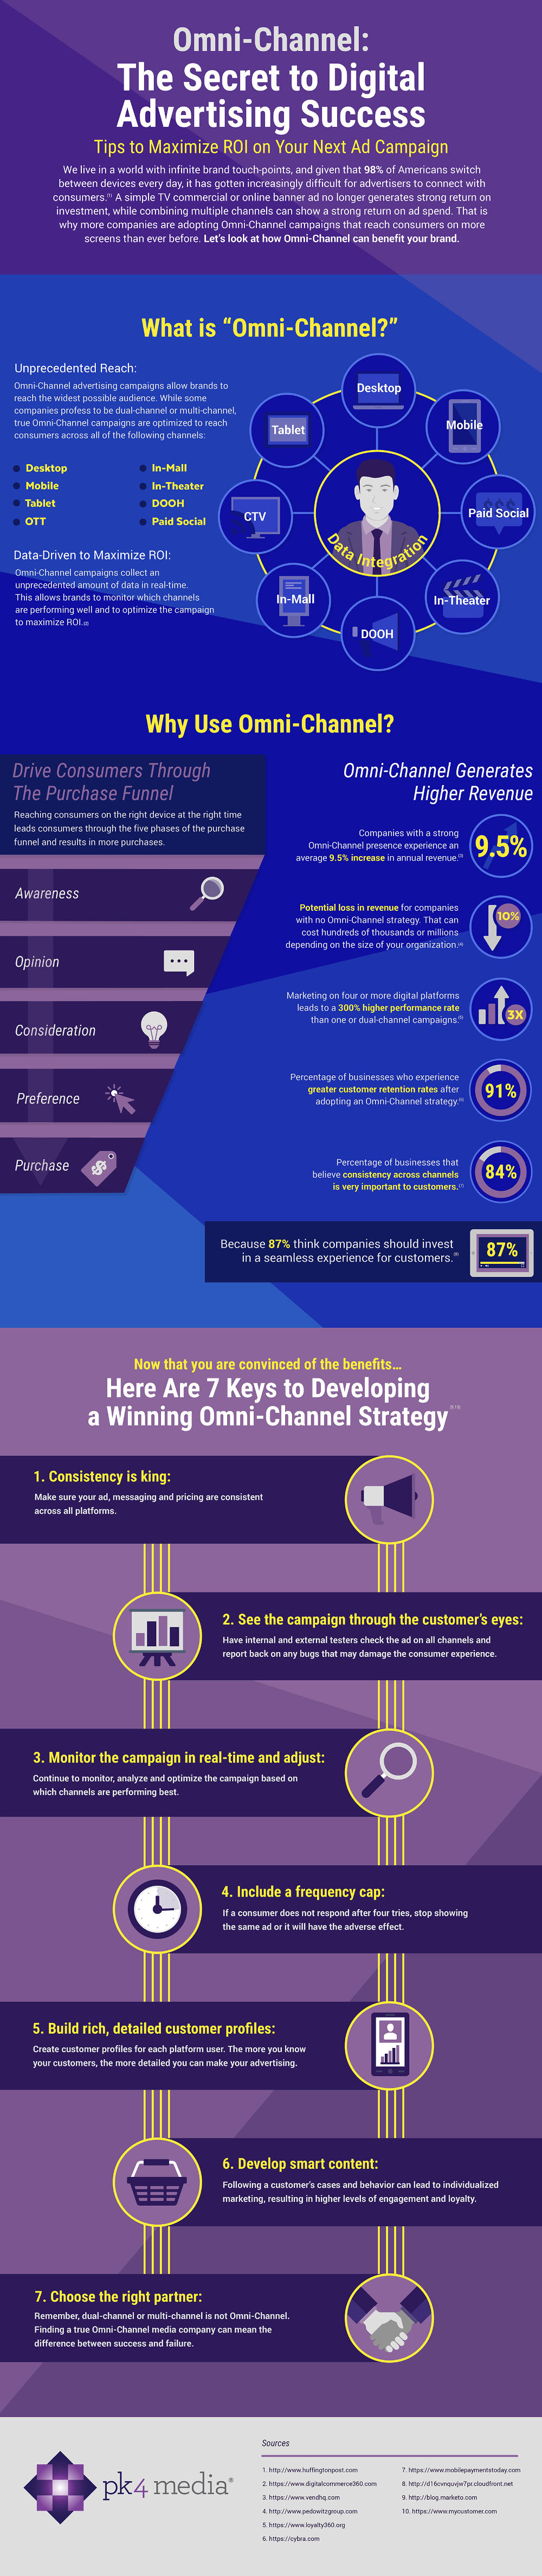 OmniChannel Today and The Secret to Digital Advertising Success [Infographic]